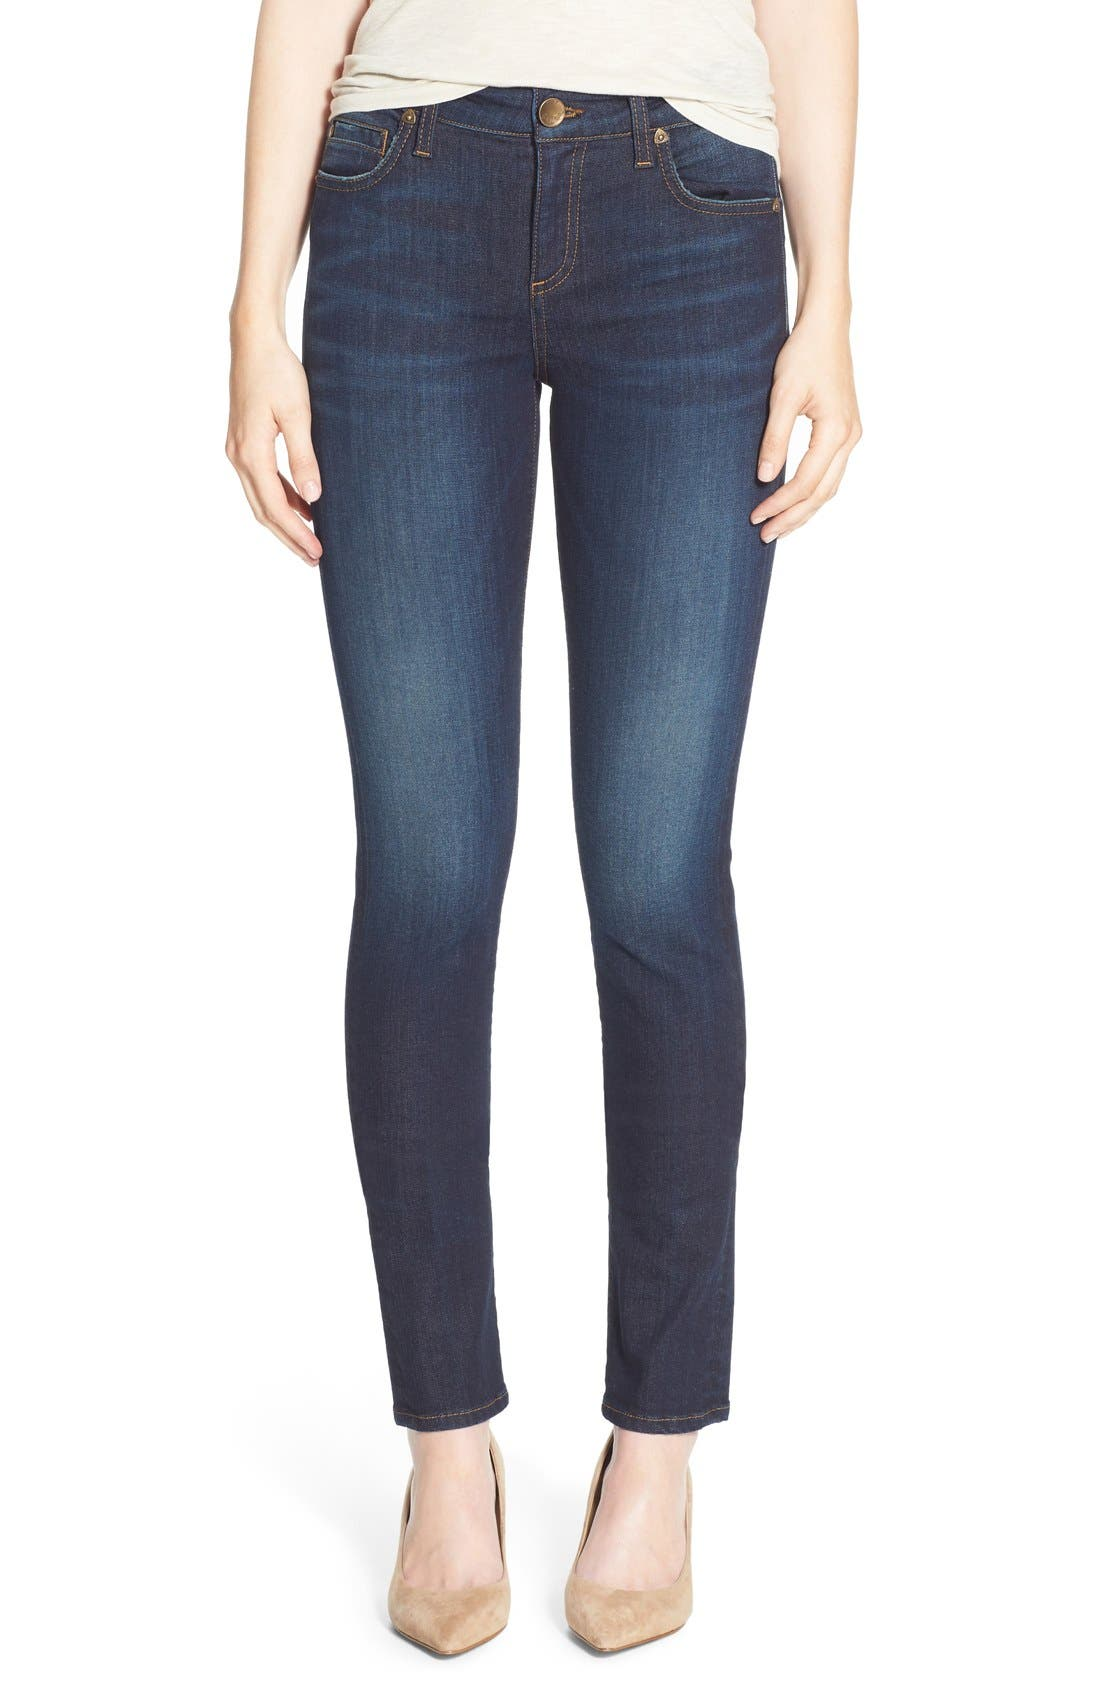 'Diana' Stretch Skinny Jeans,                             Main thumbnail 1, color,                             Blinding